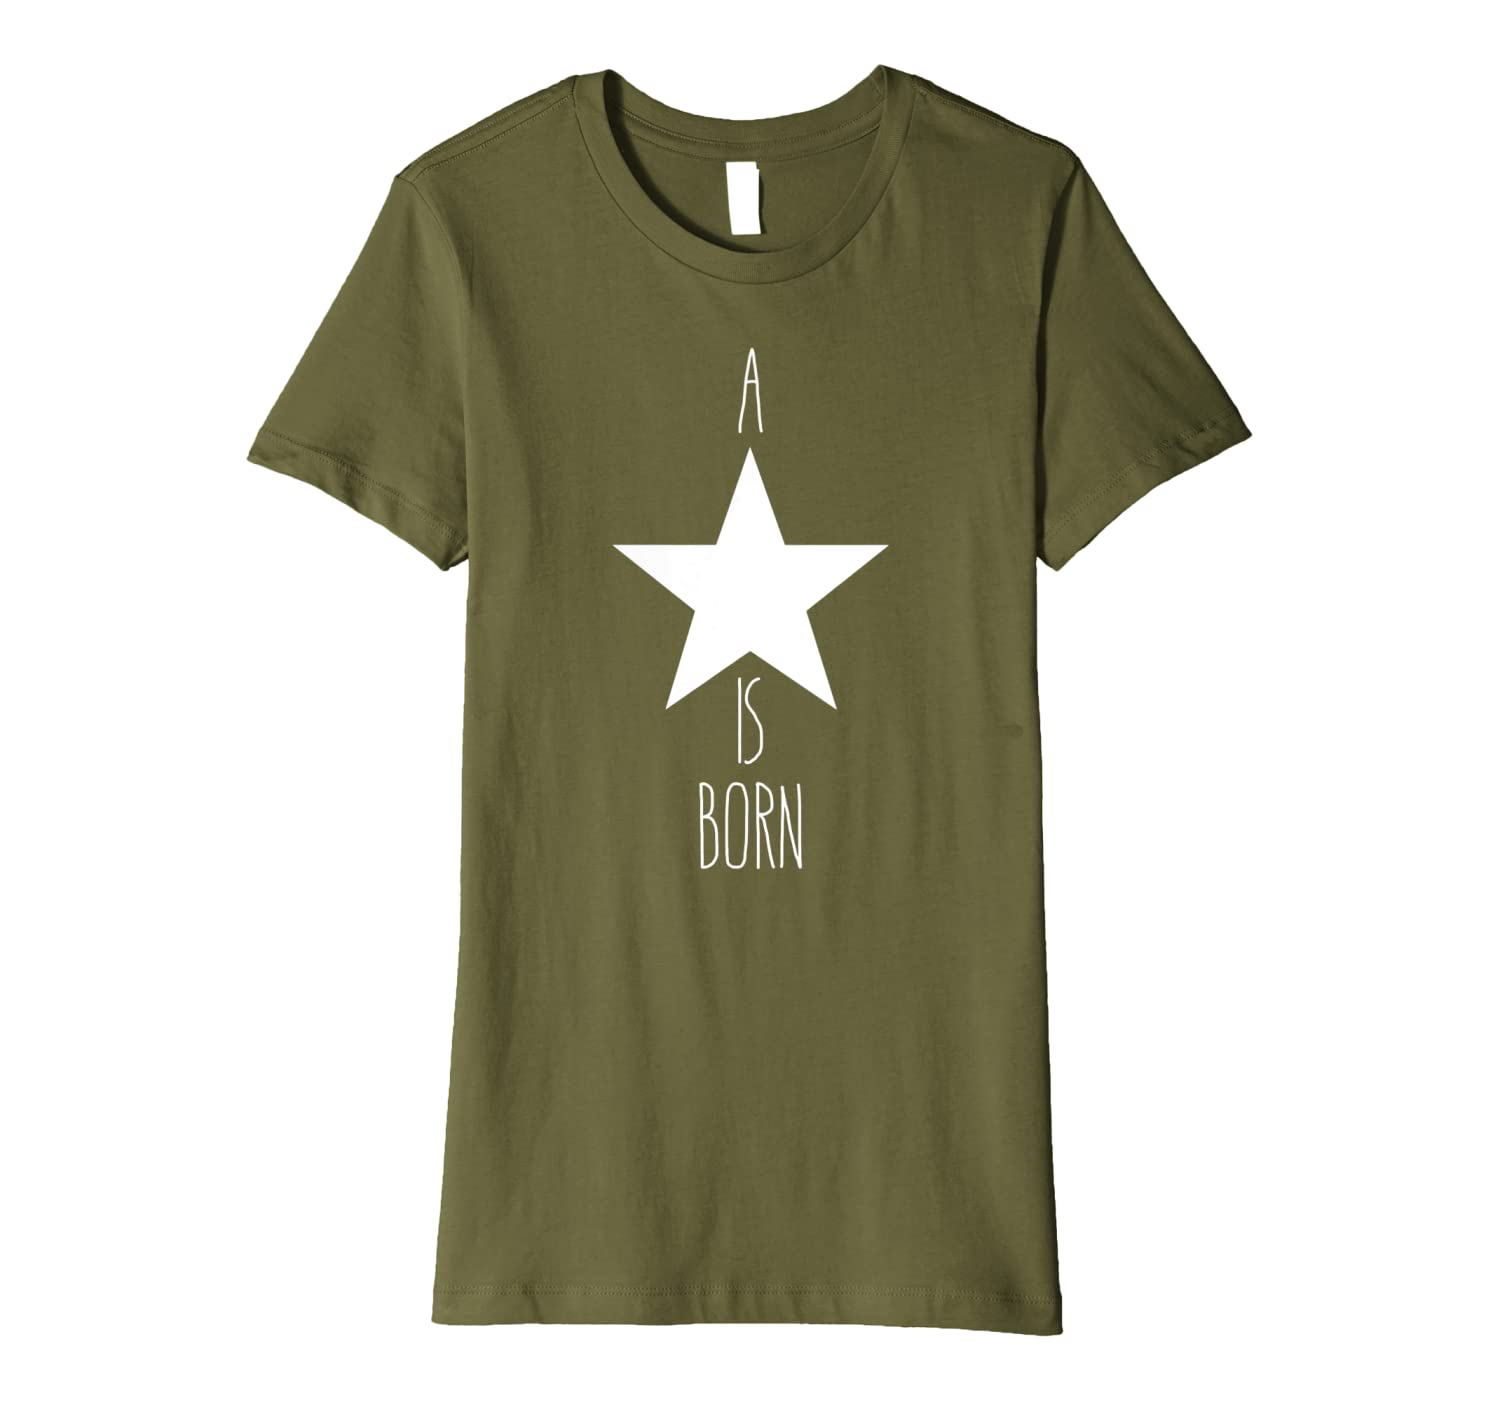 A STAR IS BORN Tee 4 Men Women Kids Children Love Celebrity Premium T-Shirt